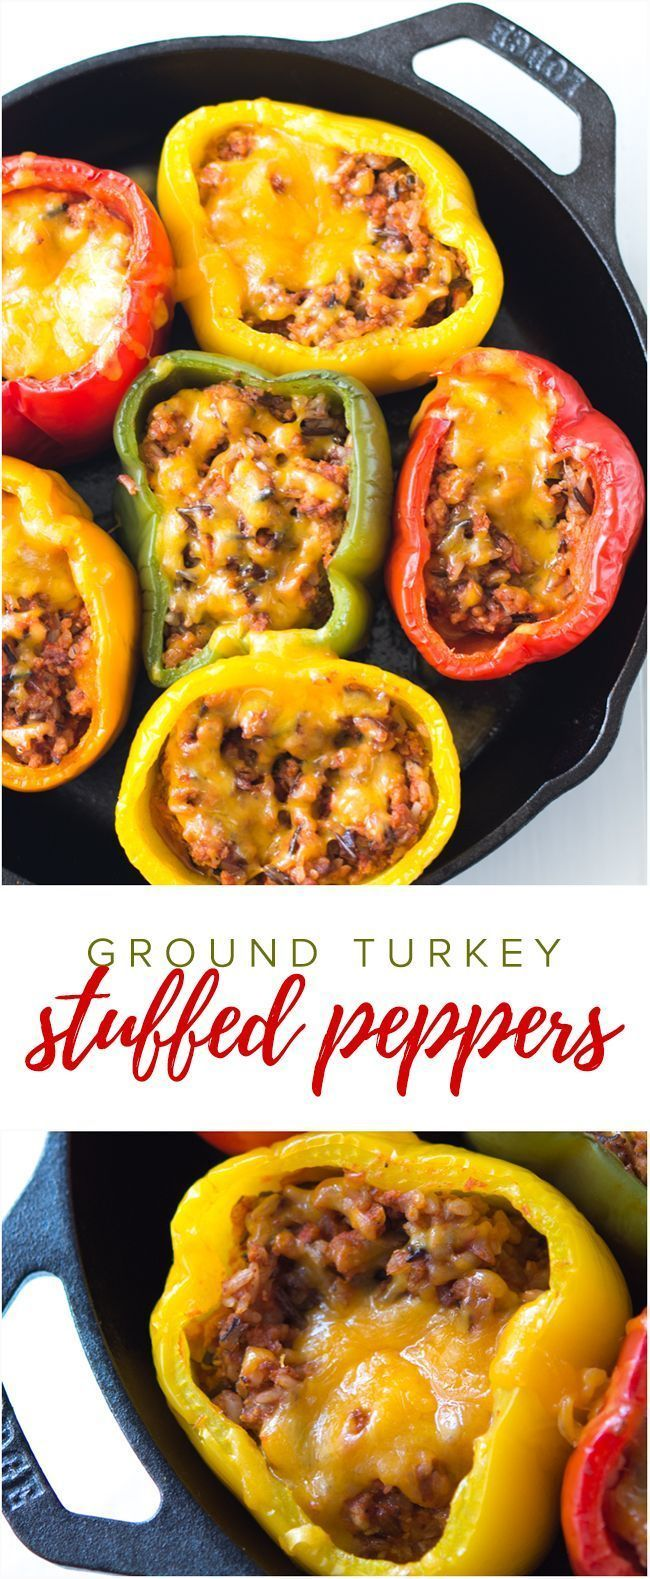 EASY GROUND TURKEY STUFFED PEPPERS!!! #healthyfood